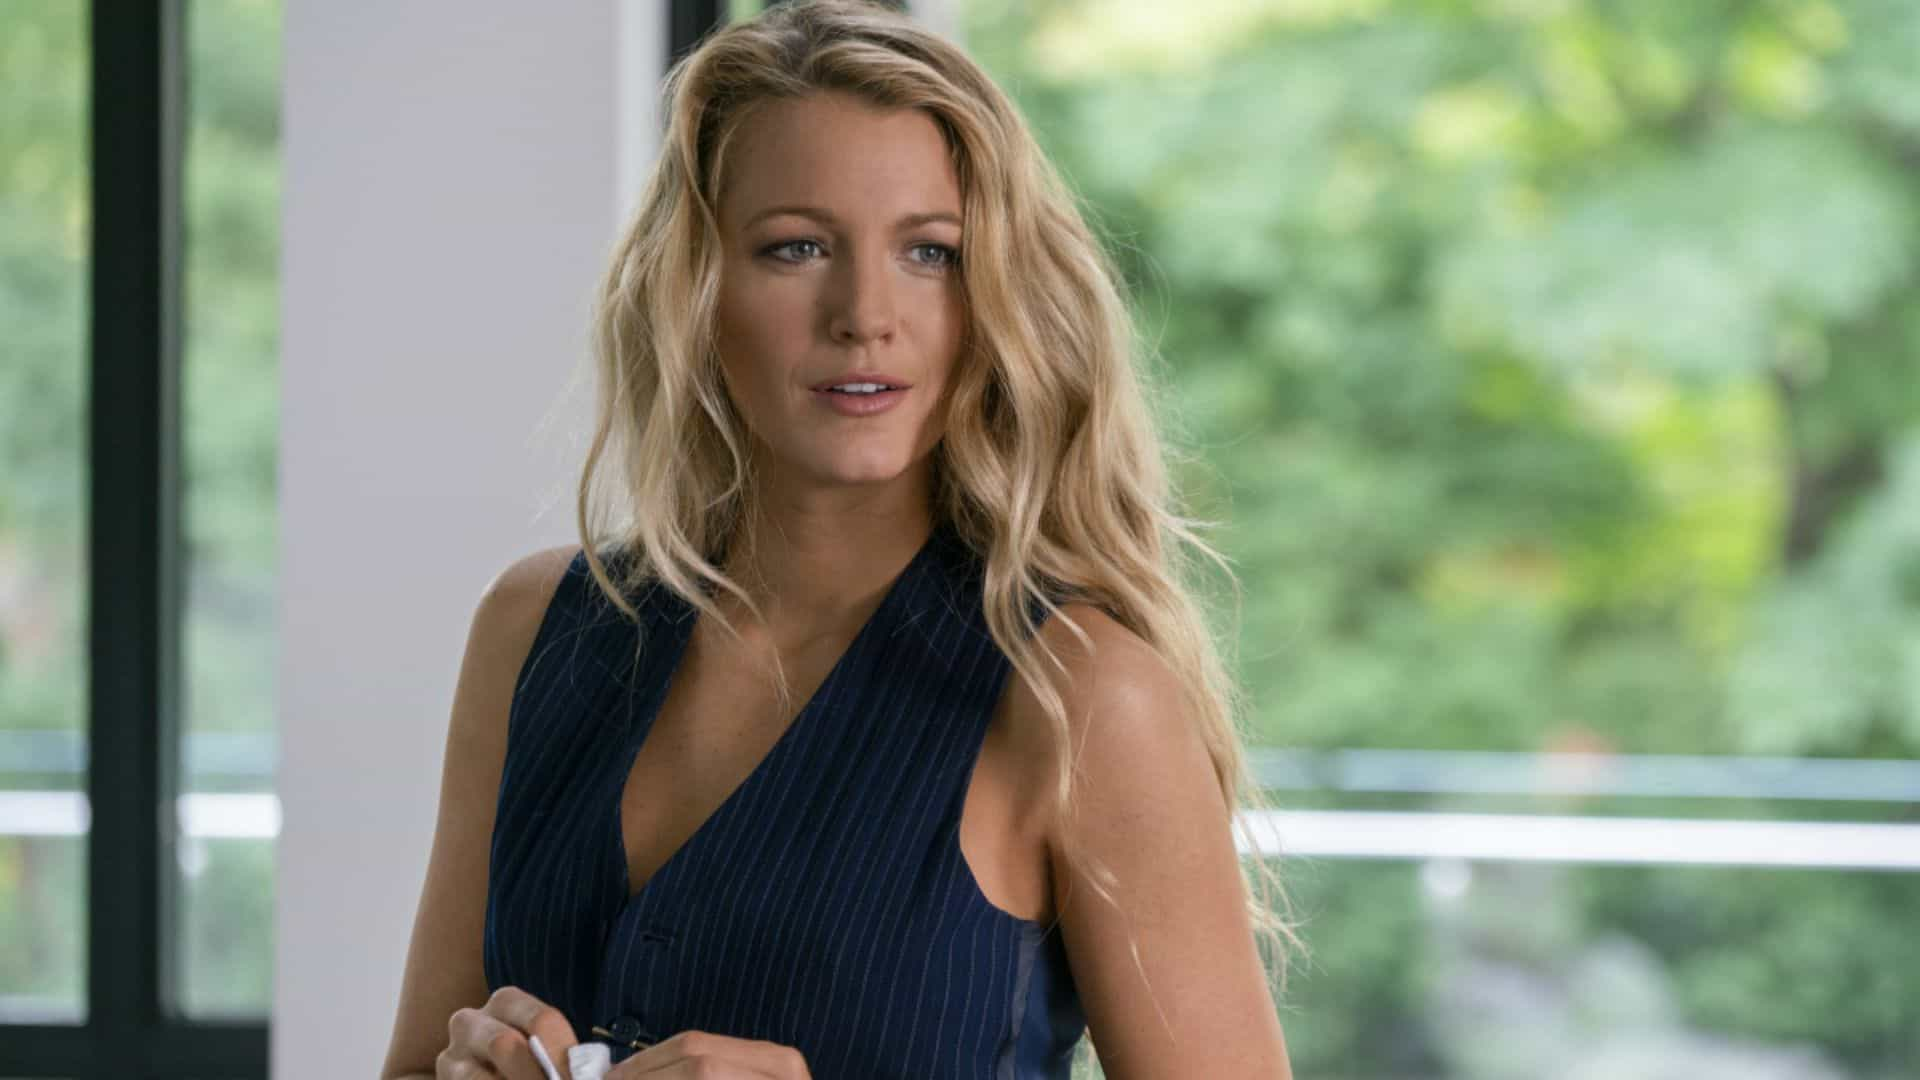 BLAKE LIVELY TO STAR IN BLAKE'S 7 REMAKE